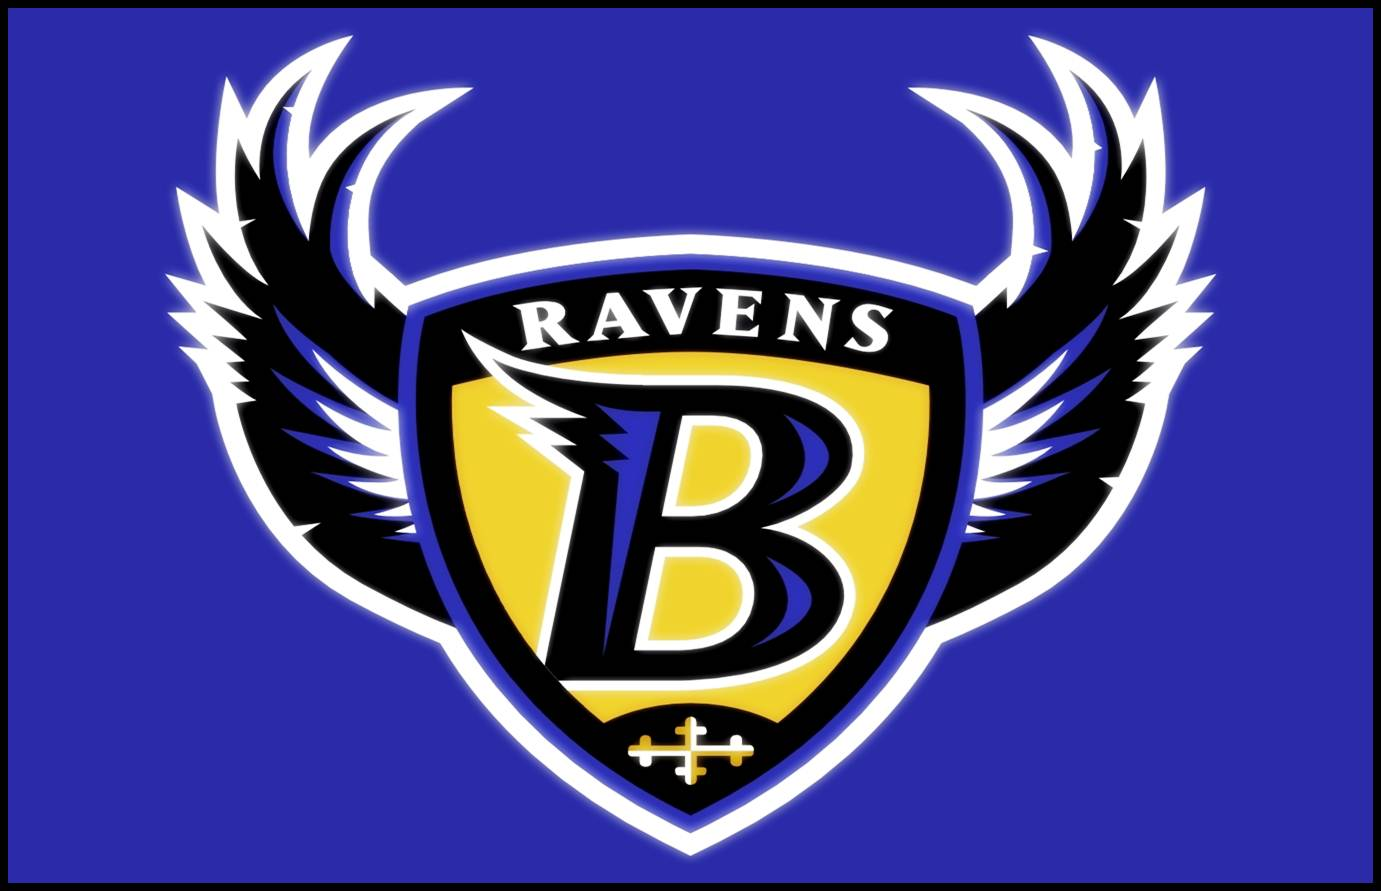 ravens logo wallpapers with gray backgrounds baltimore ravens desktop 1381x891